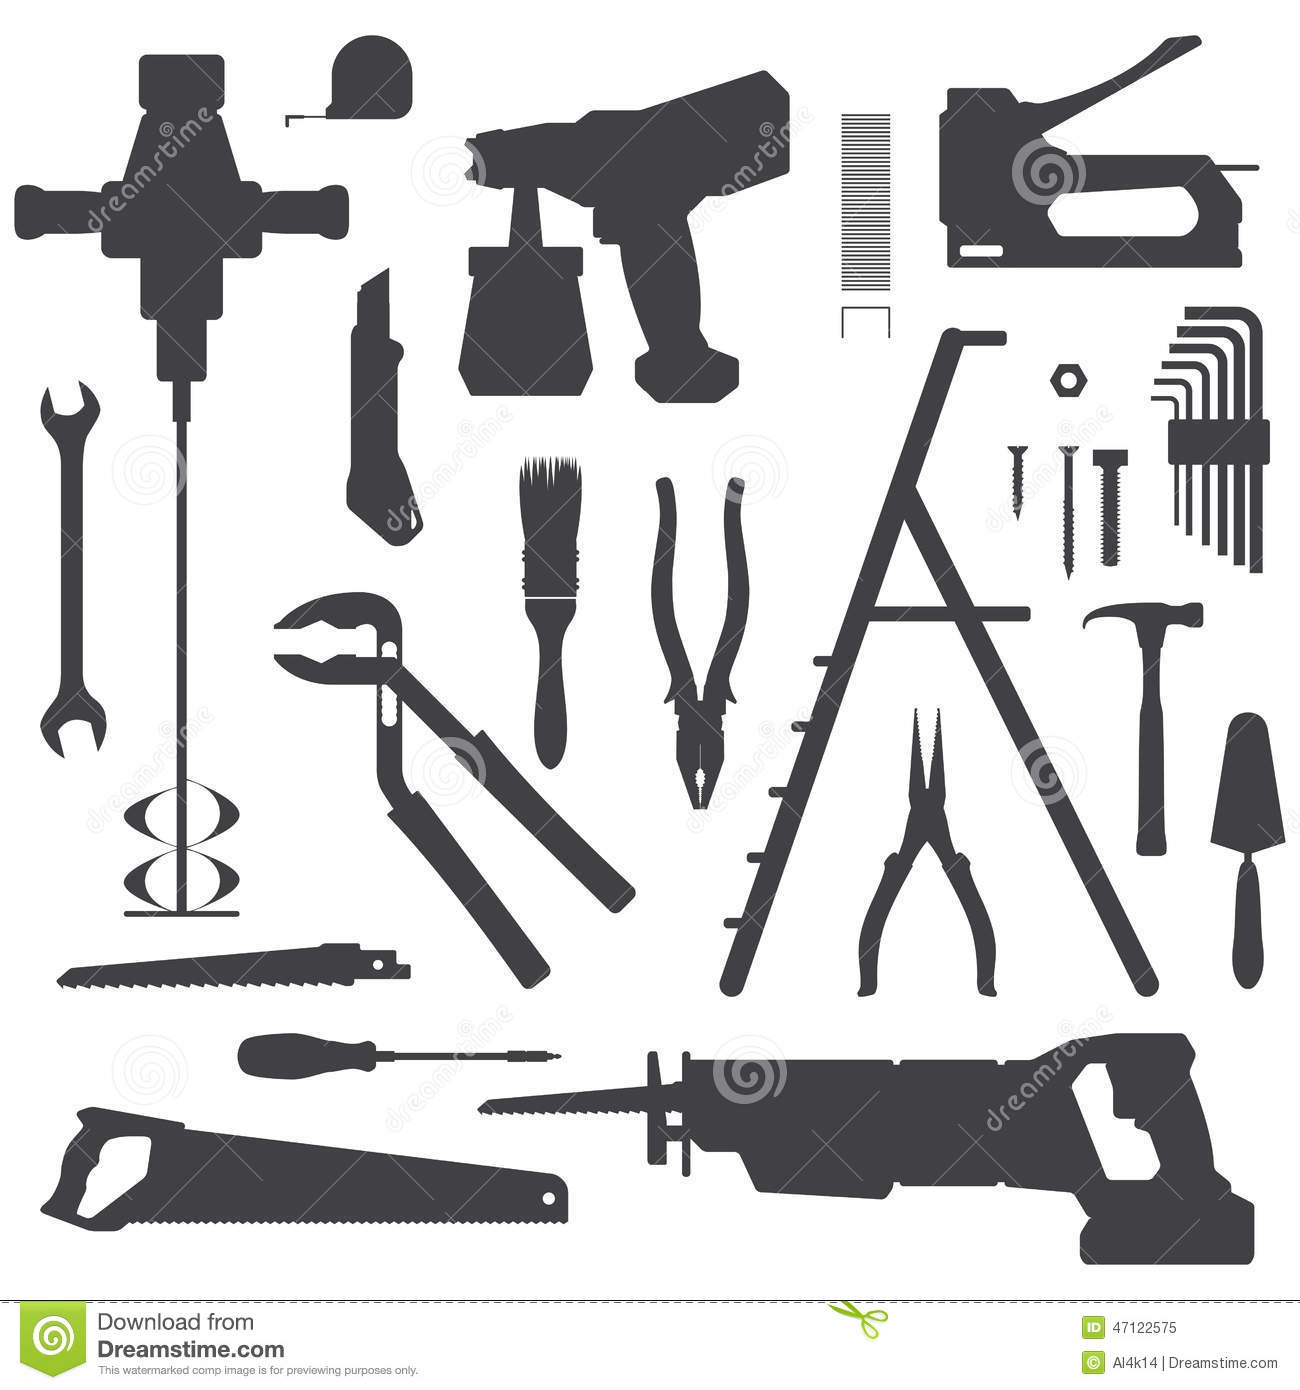 House remodel instruments silhouette set stock vector for House remodeling tools